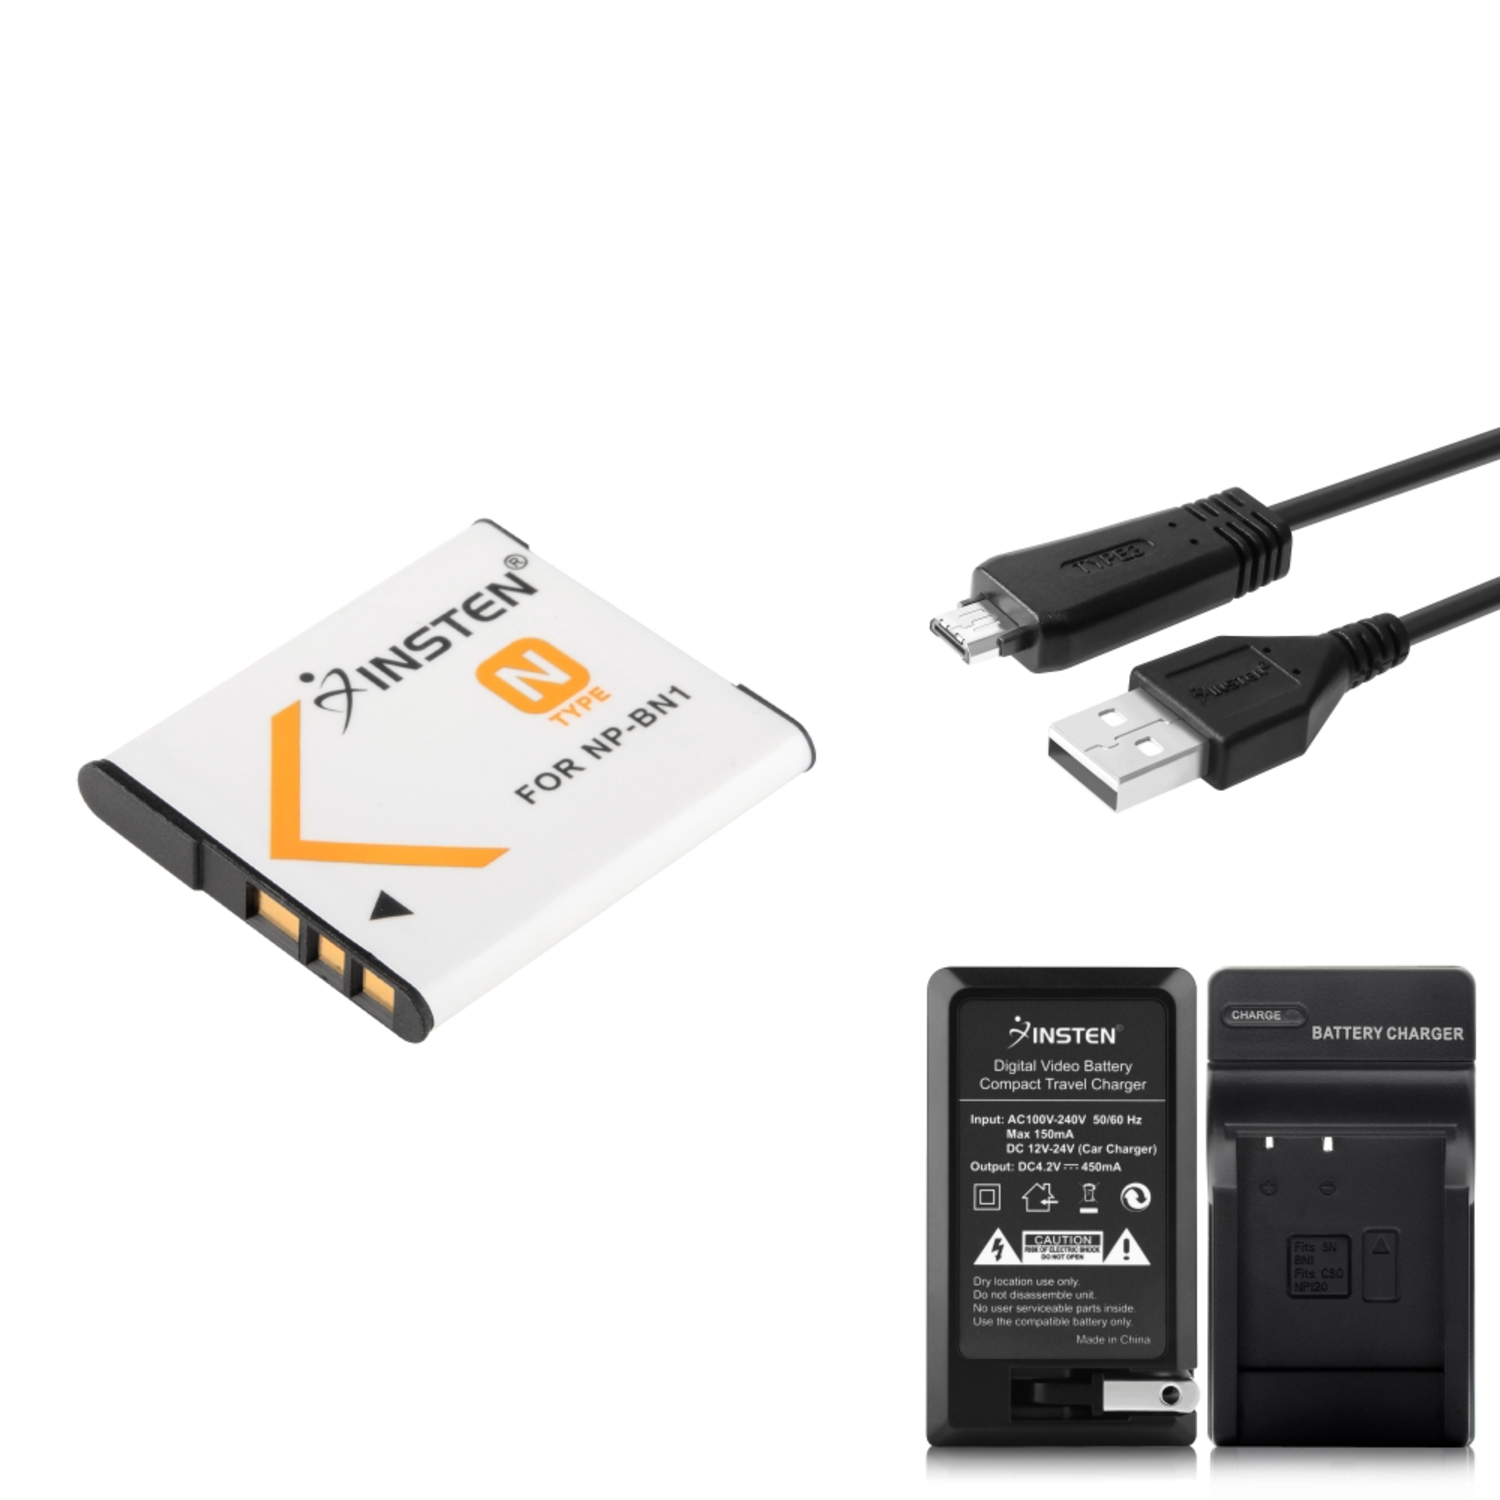 Insten USB Data Cable VMC-MD3+Charger+2x NP-BN1 Battery For Sony CyberShot DSC-TX100V